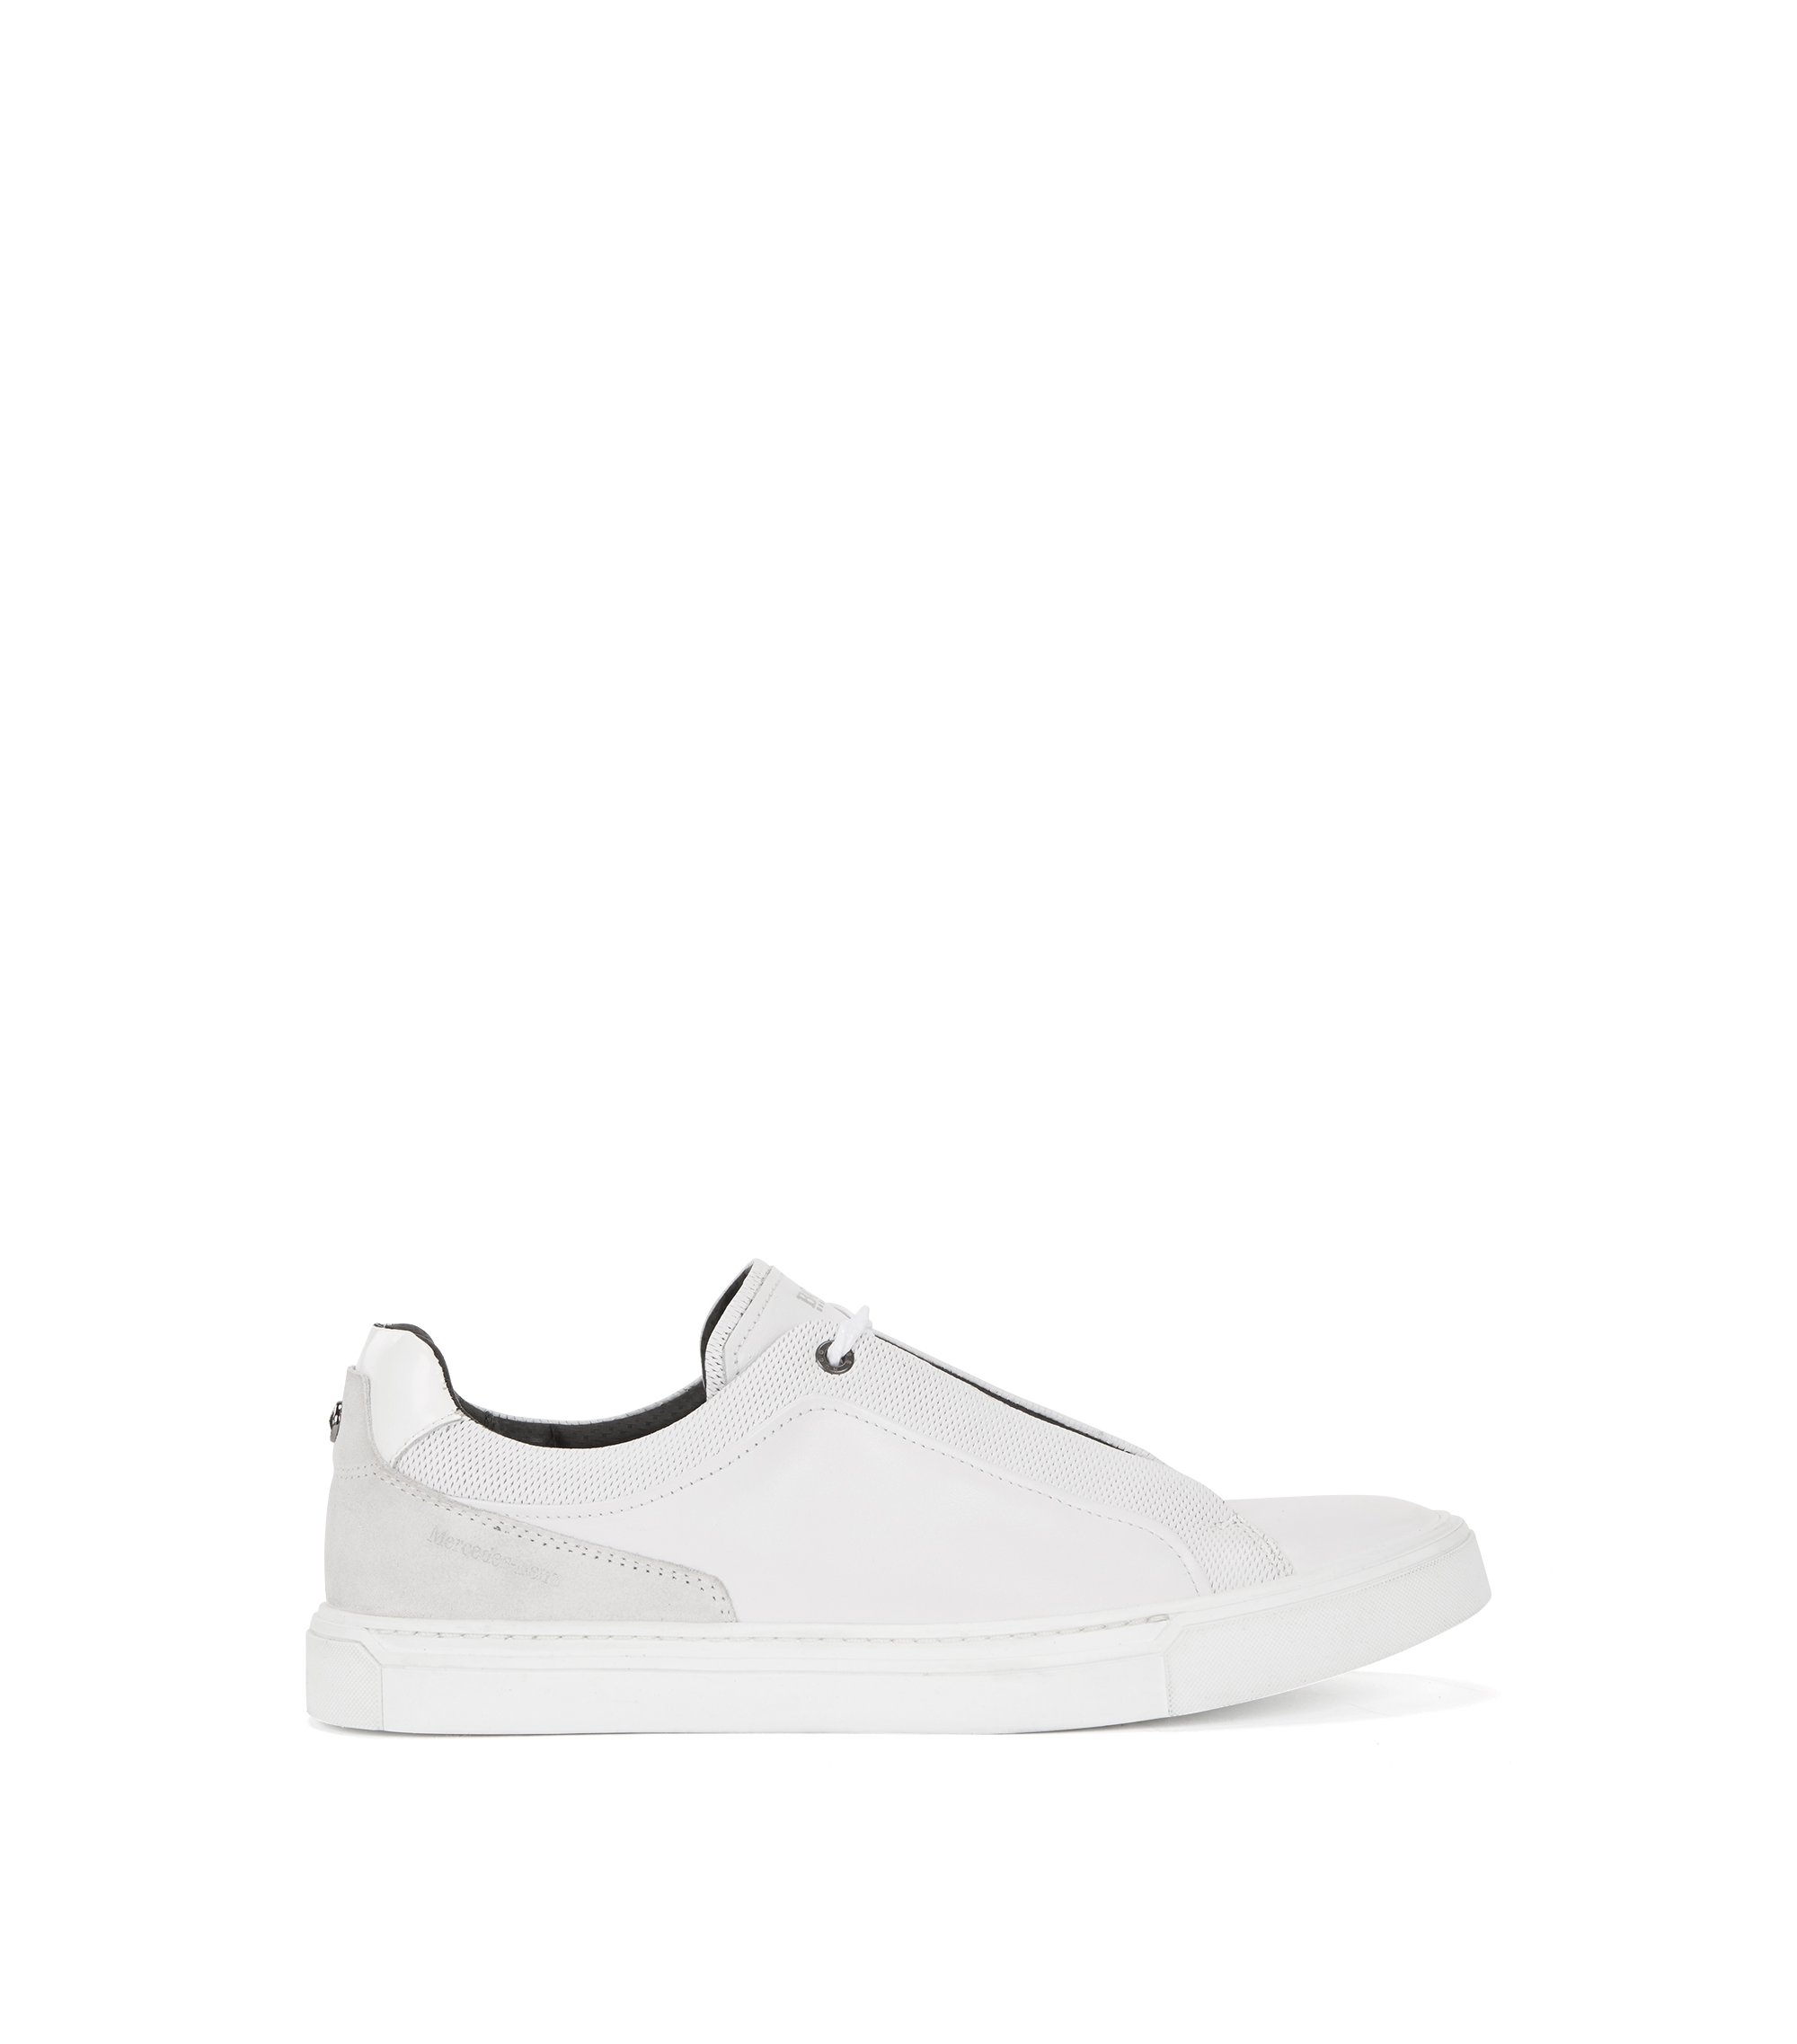 Mercedes-Benz sneakers in leather and suede, White